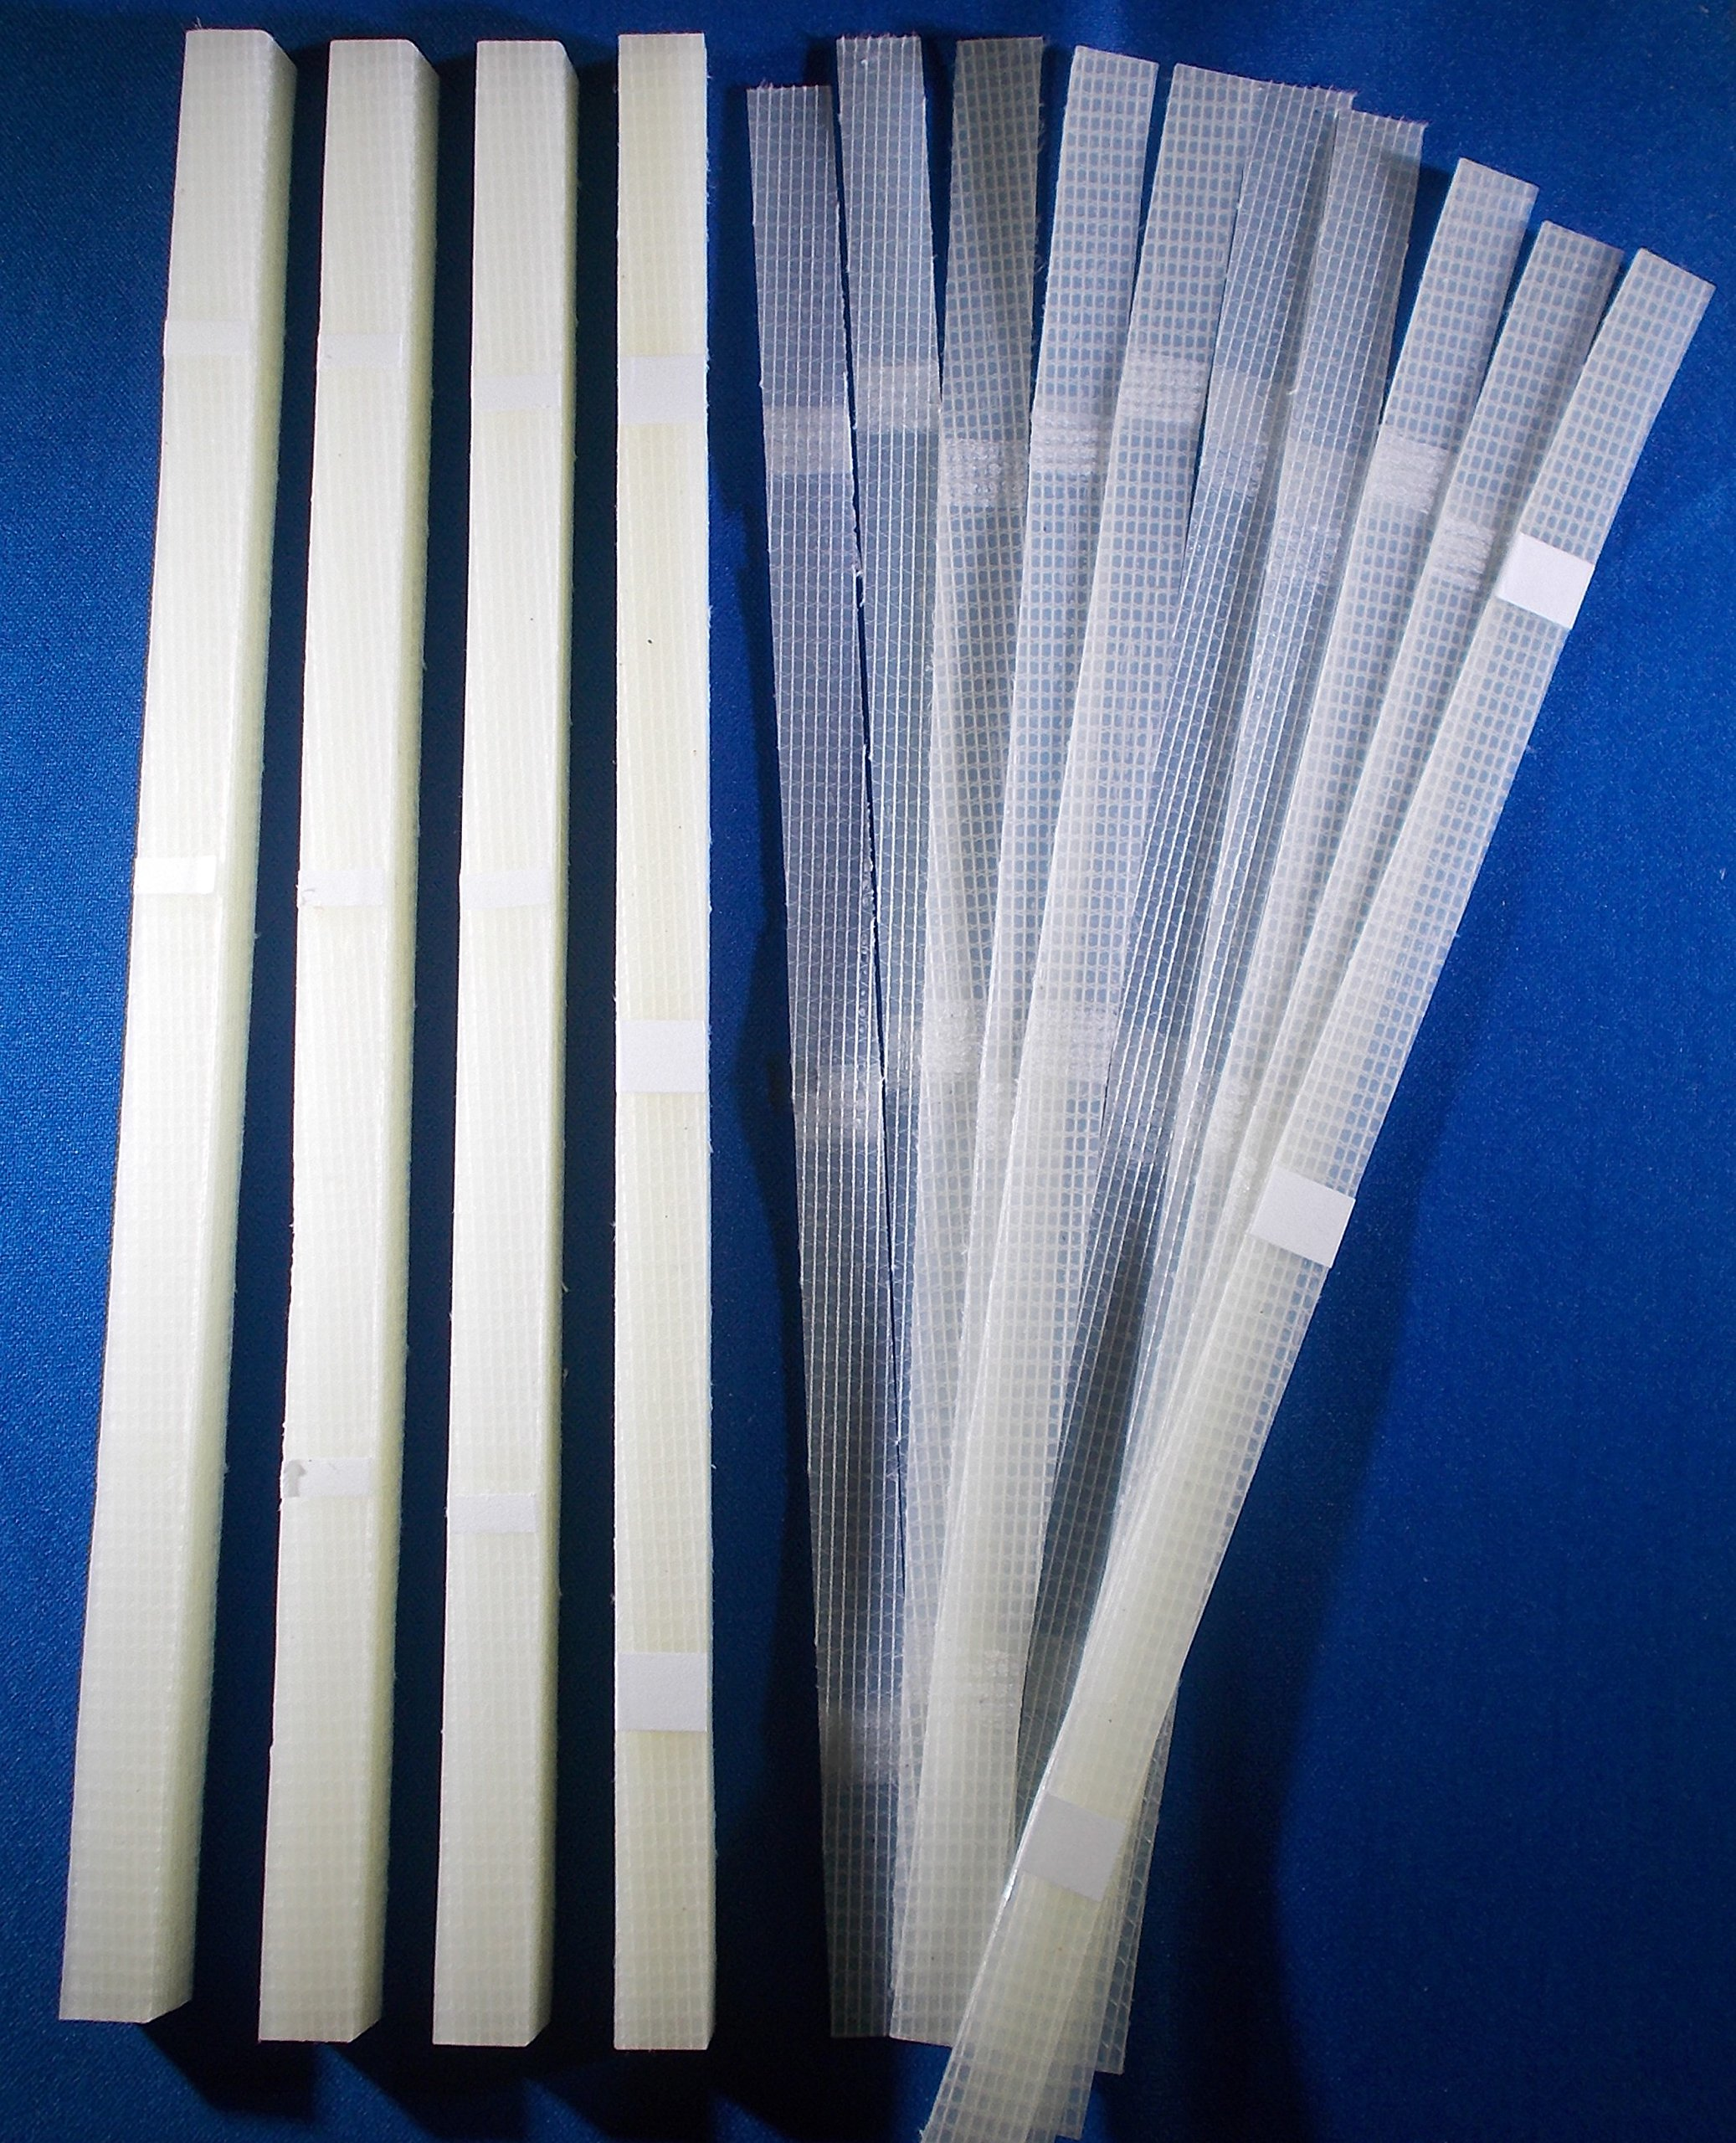 ThermoBind 50Pcs 1/2'' (12mm) Glue Strips with mesh Backing - 80-110 Sheet Capacity by ThermoBind